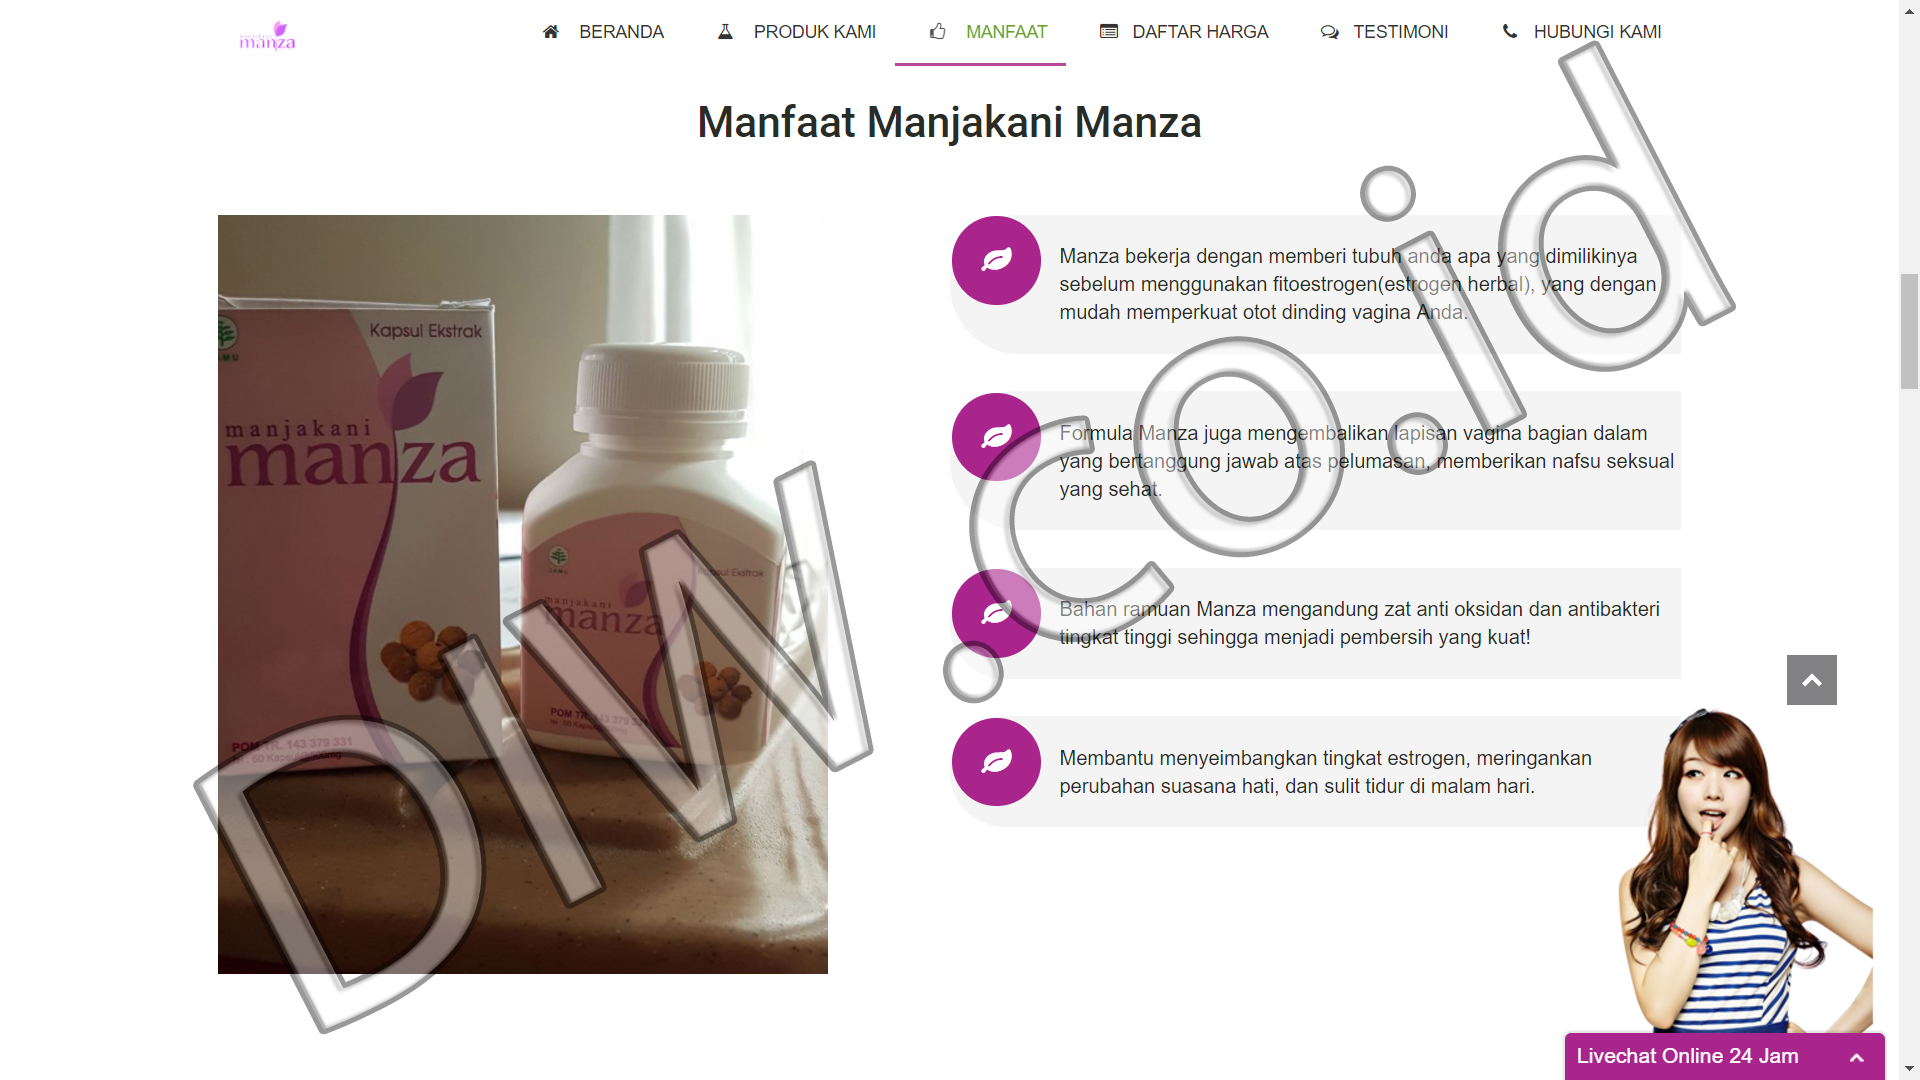 Portfolio 3 - Manjakani Manza - Andri Sunardi - Freelancer - Web Developer - CEO DIW.co.id